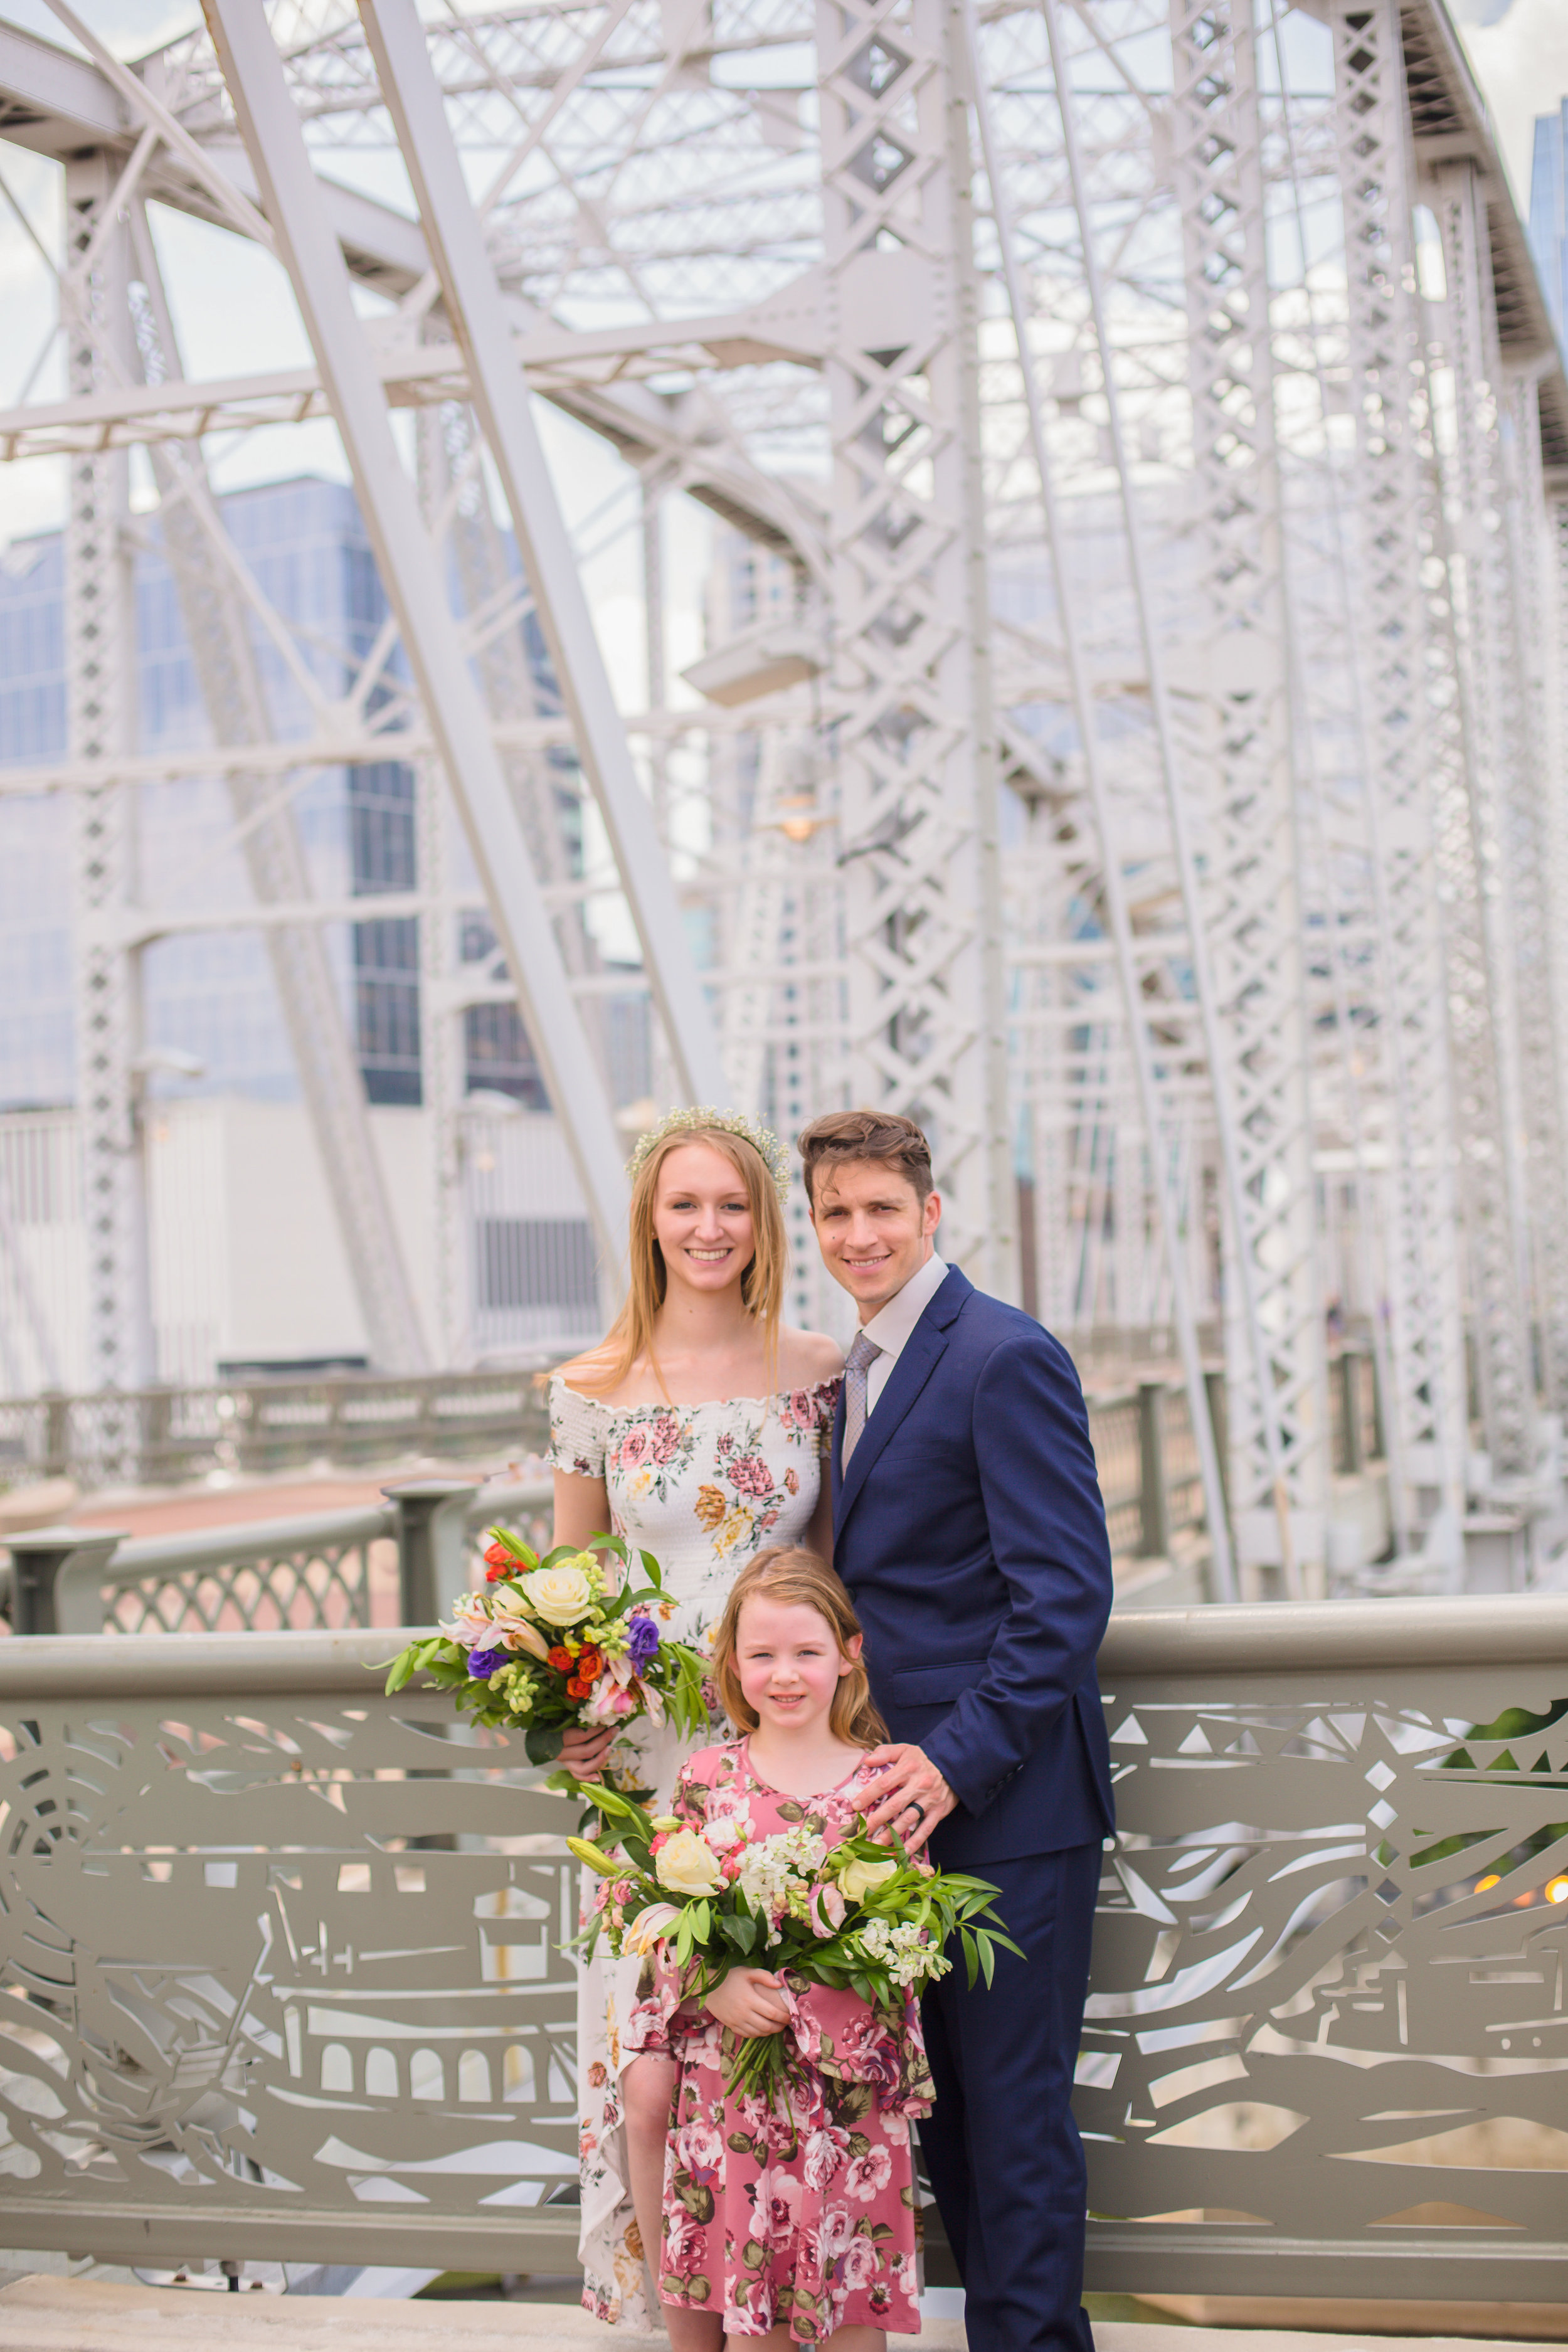 Armstrong Nashville Elopement - Nashville Wedding Photographer - Chelsea Meadows Photography (80).jpg